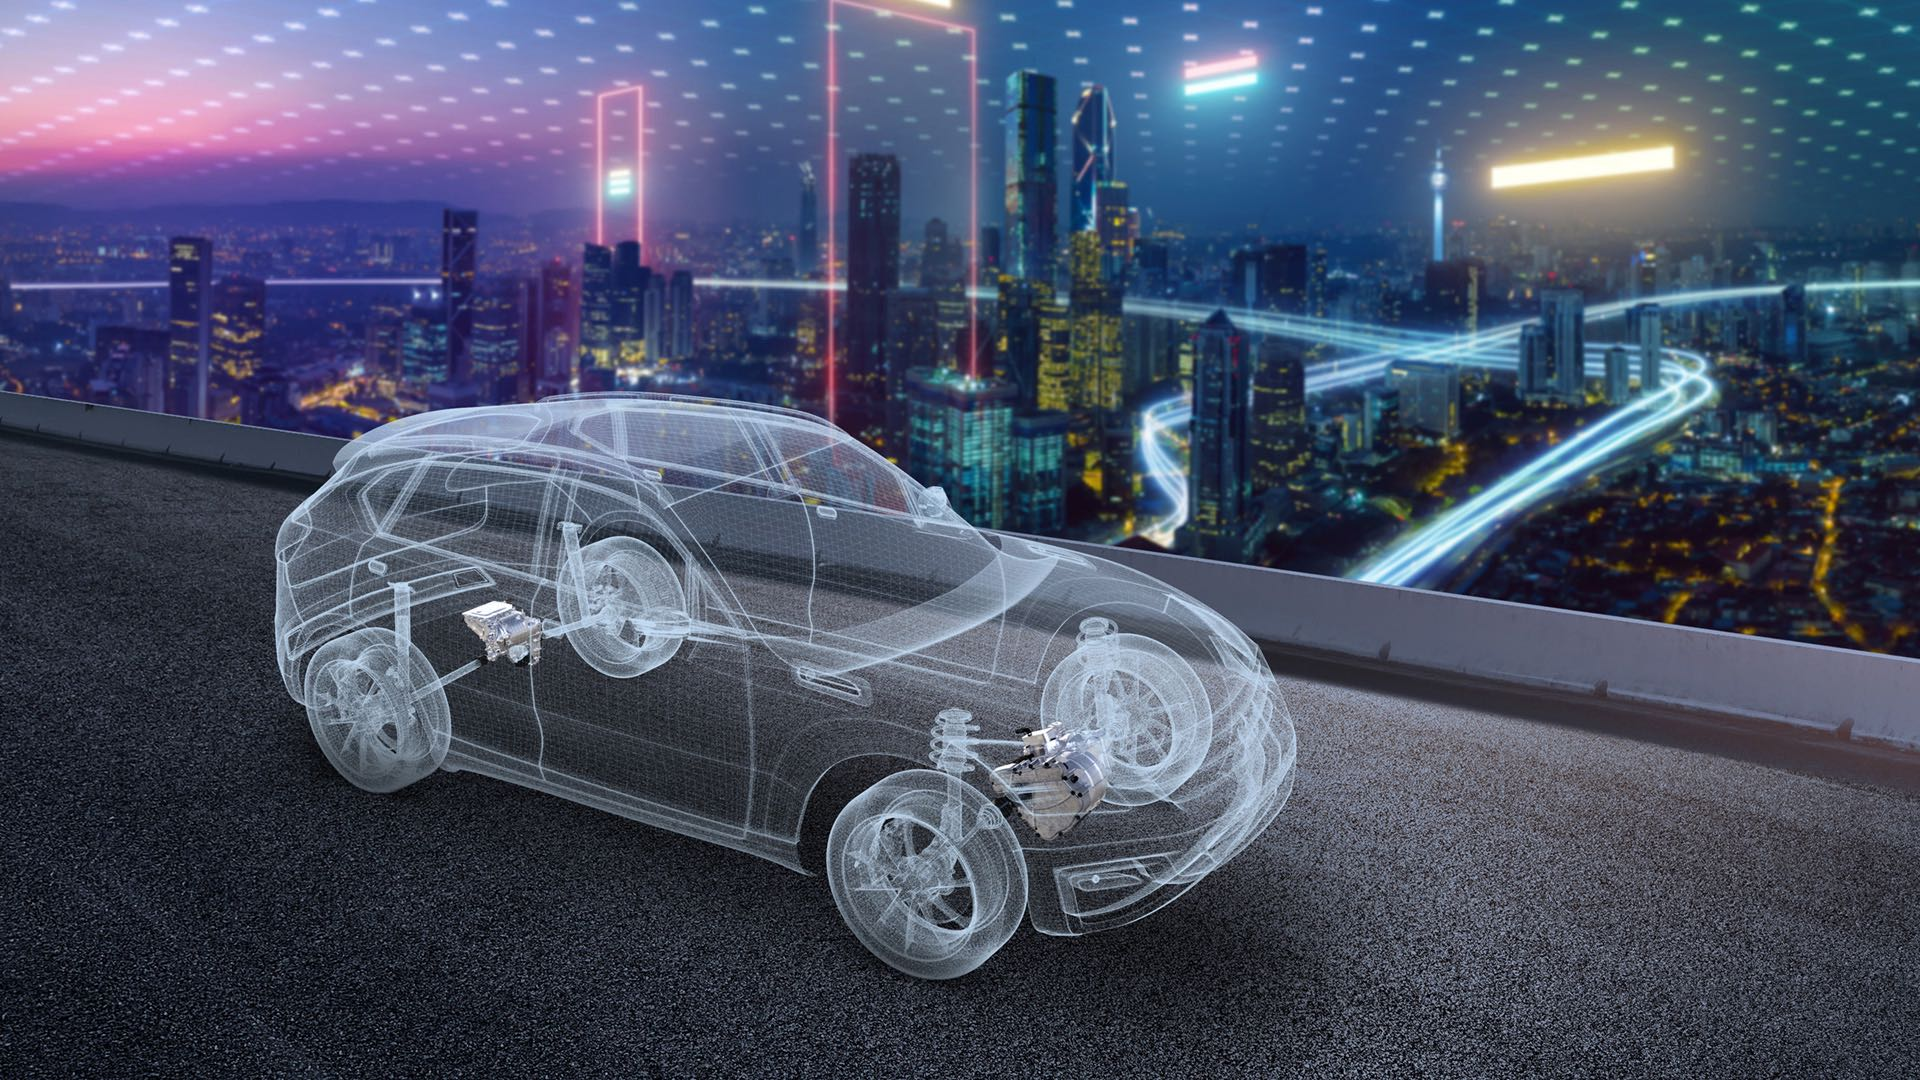 An illustration for the Powertrain vehicle electrification joint venture between LG Electronics and Magna International